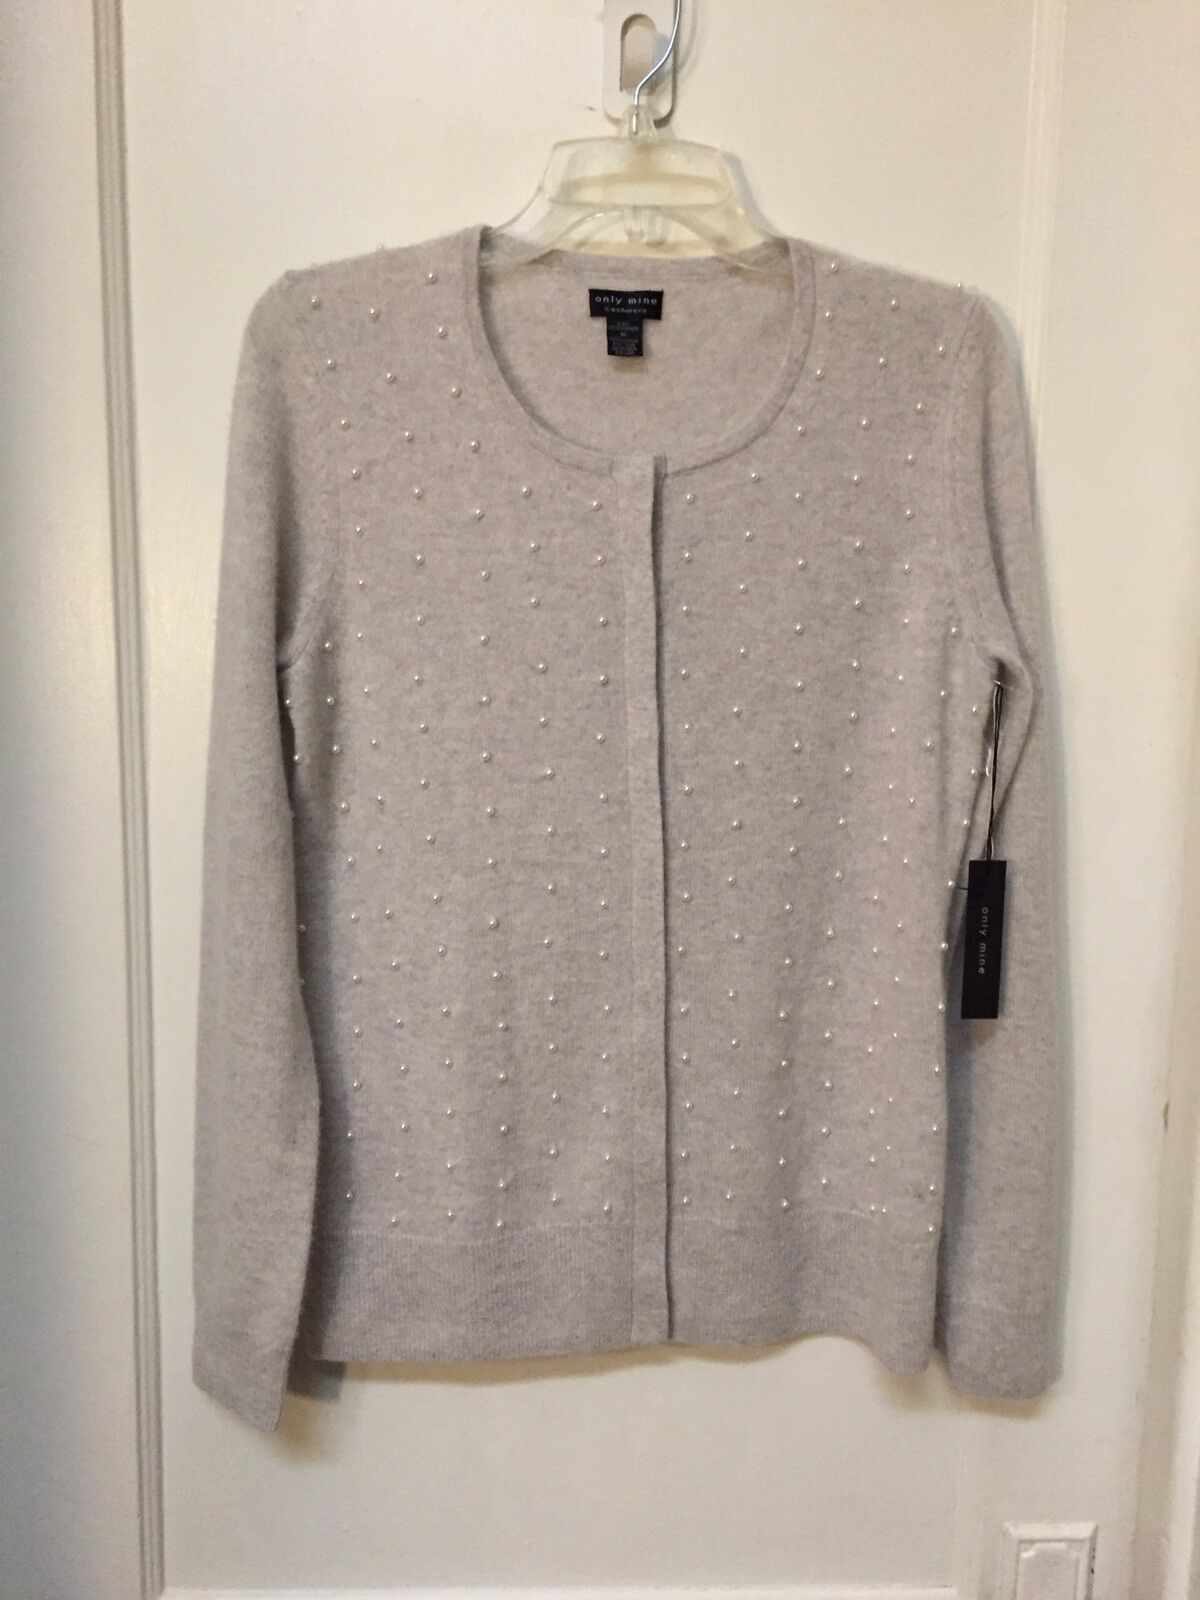 ONLY MINE 2-PLY CASHMERE SWEATER CARDIGAN EMBELLISHED NEW SIZE M